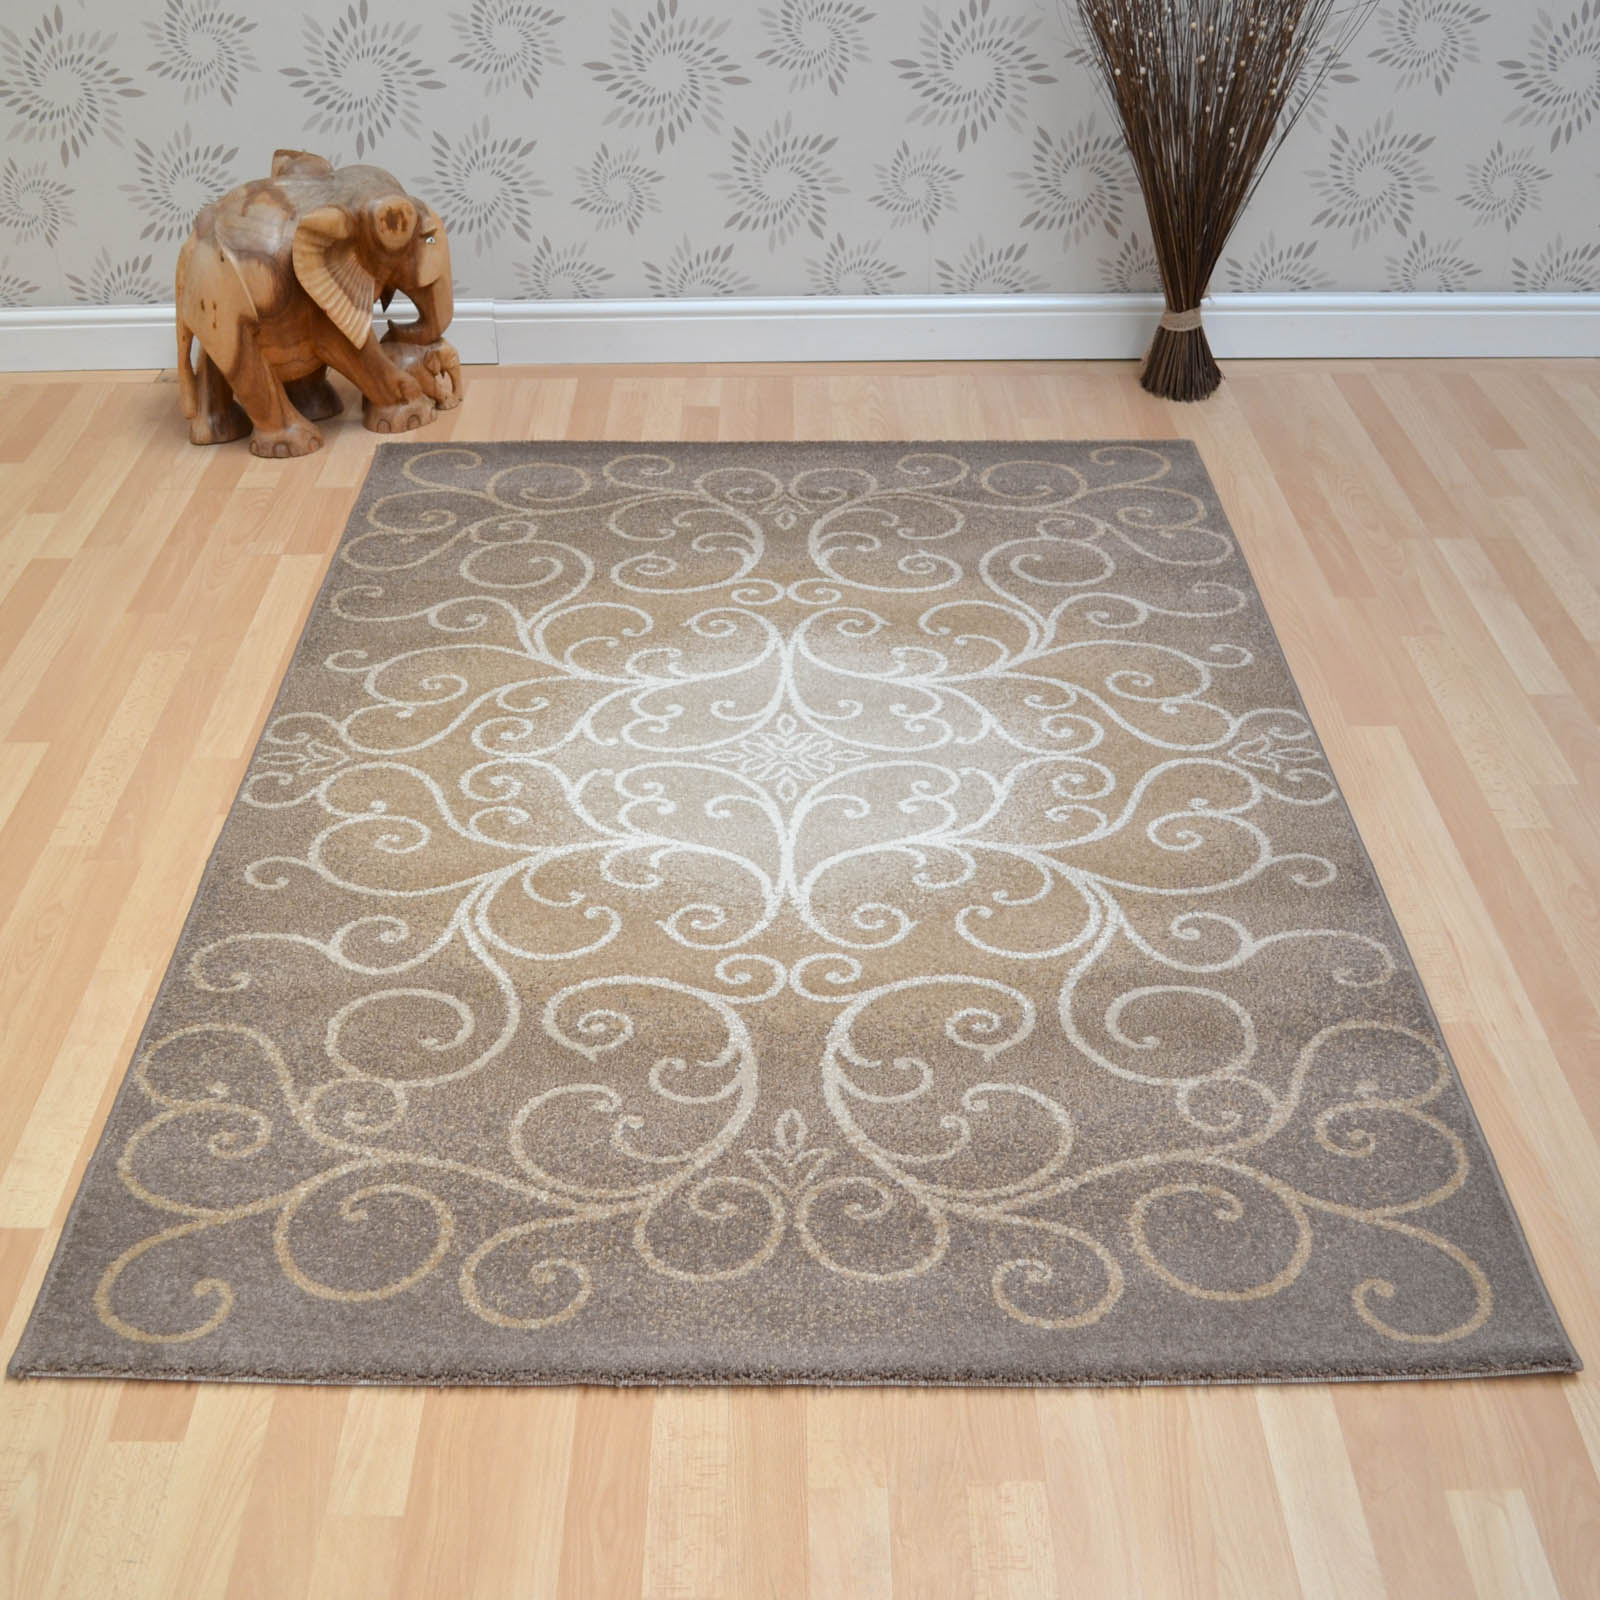 Tivoli Rugs 5895 239 Brown Beige